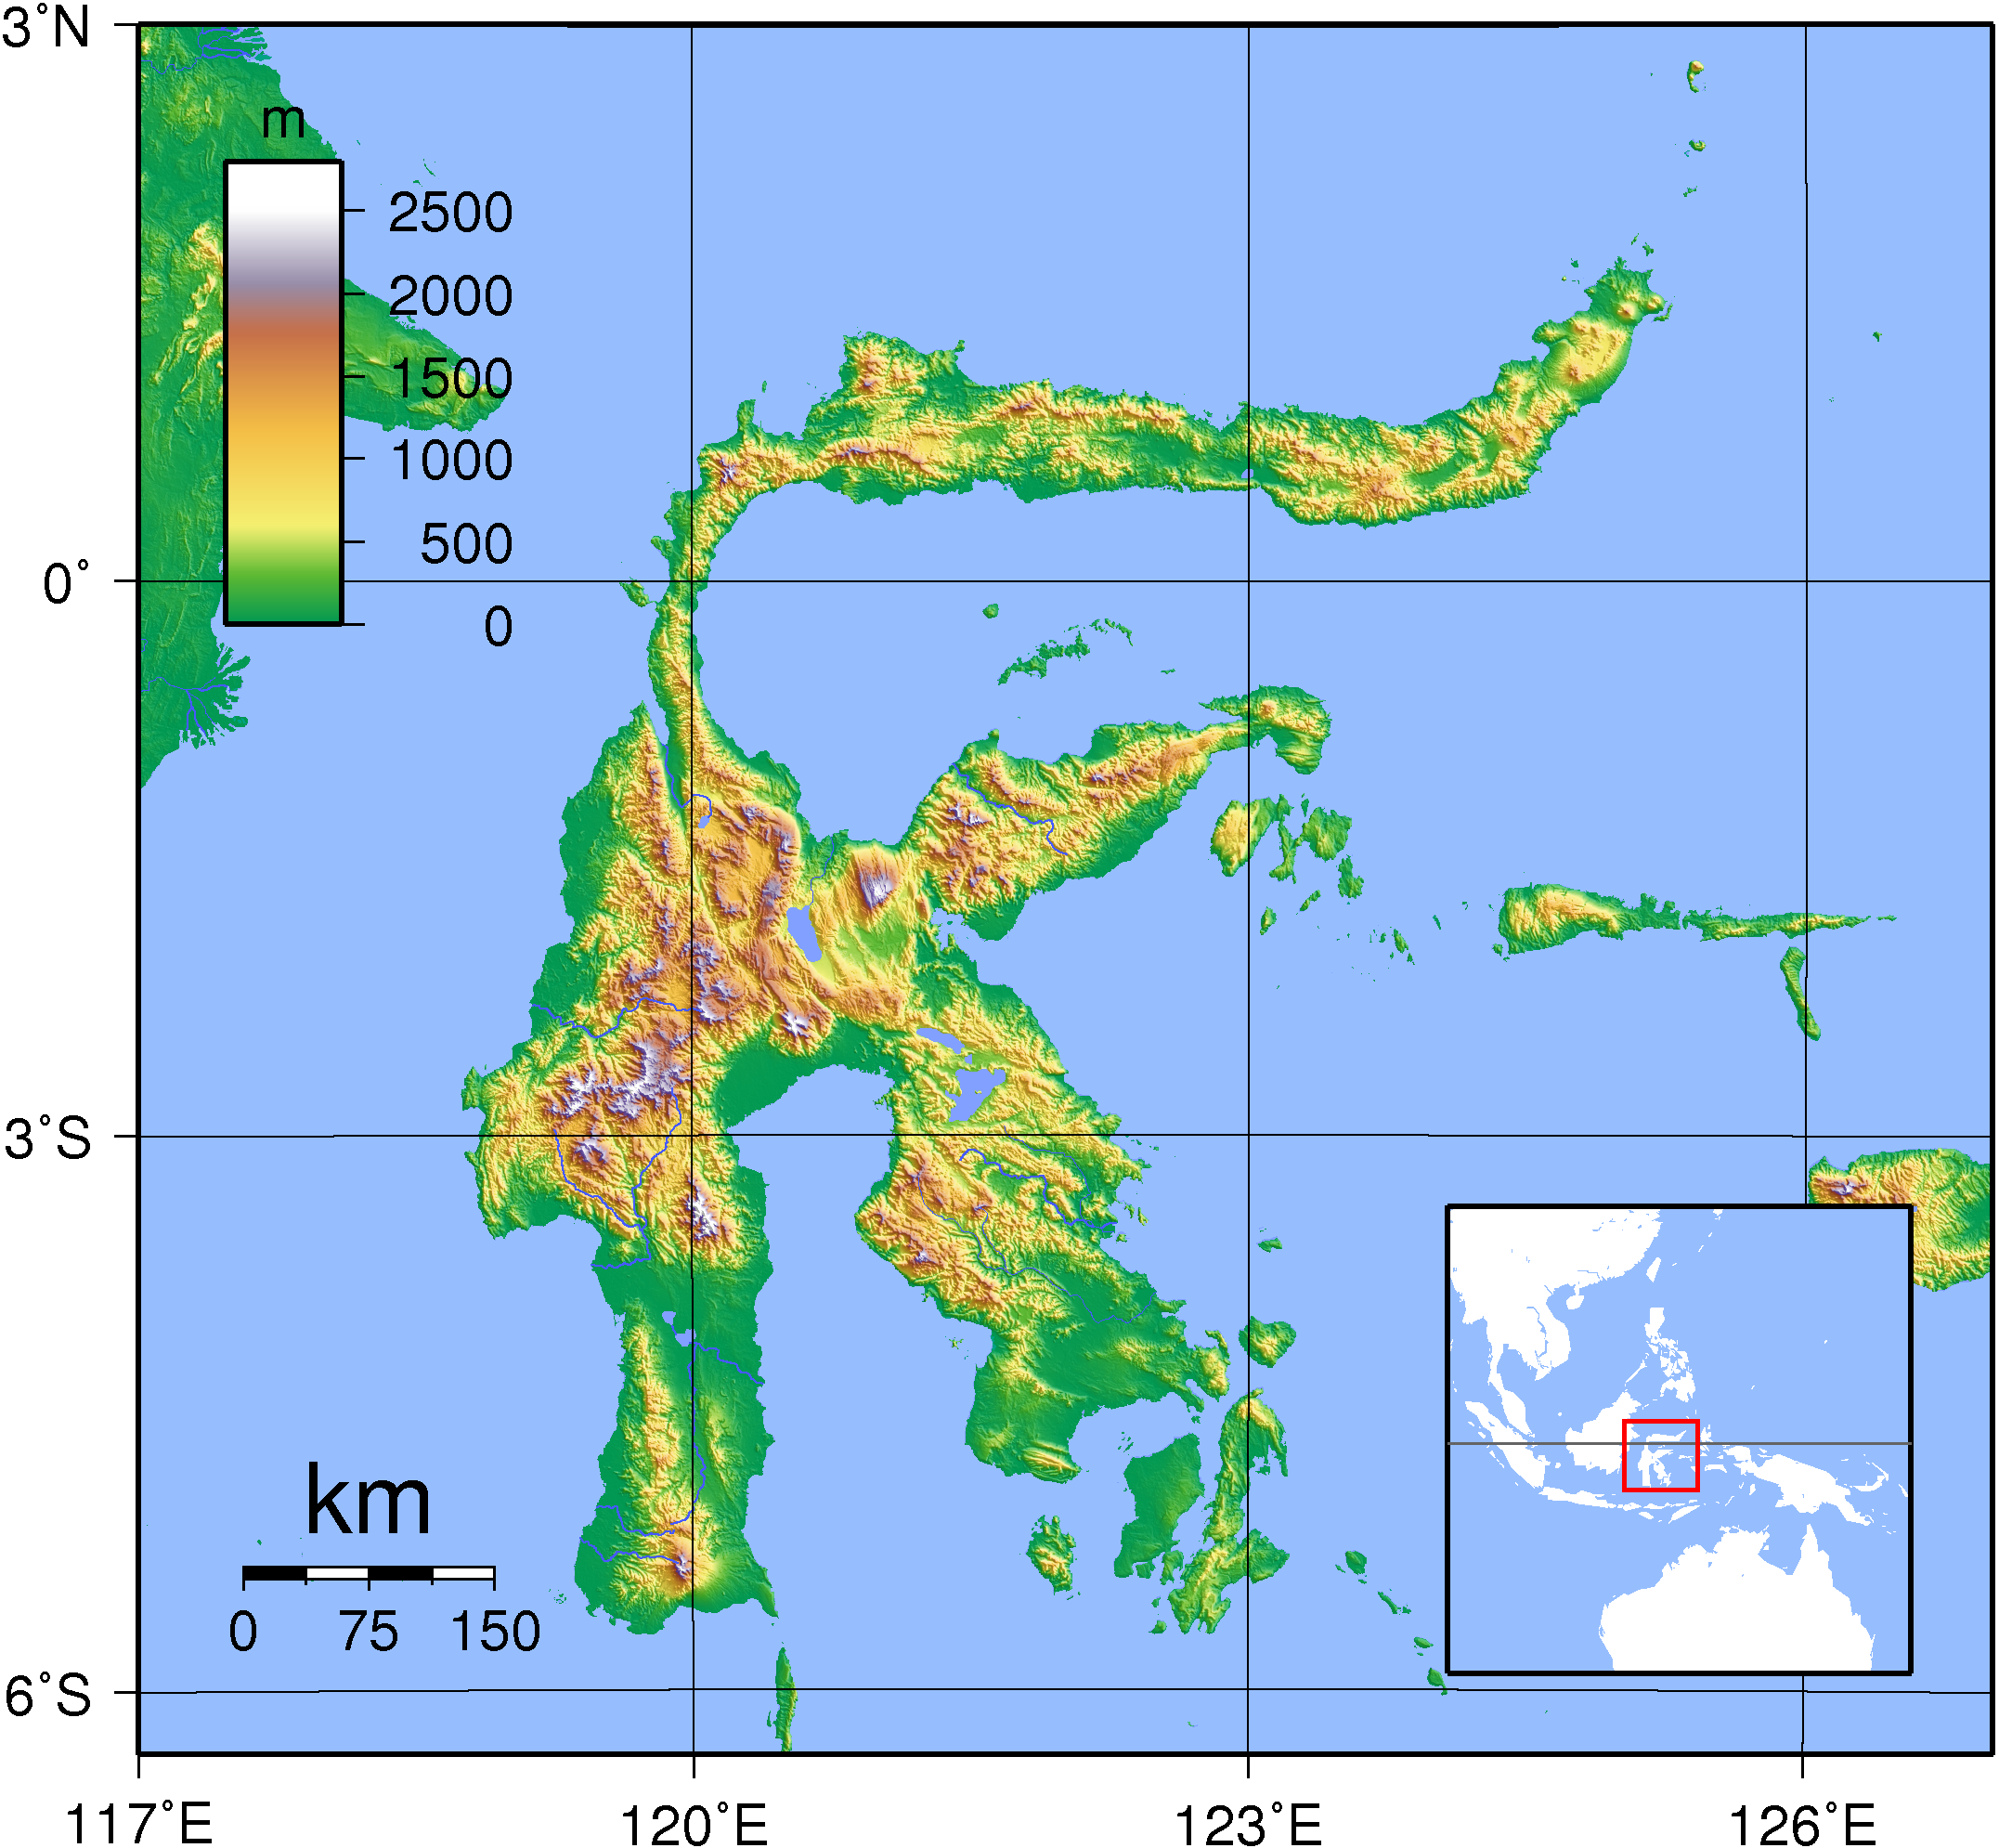 https://upload.wikimedia.org/wikipedia/commons/6/65/Sulawesi_Topography.png